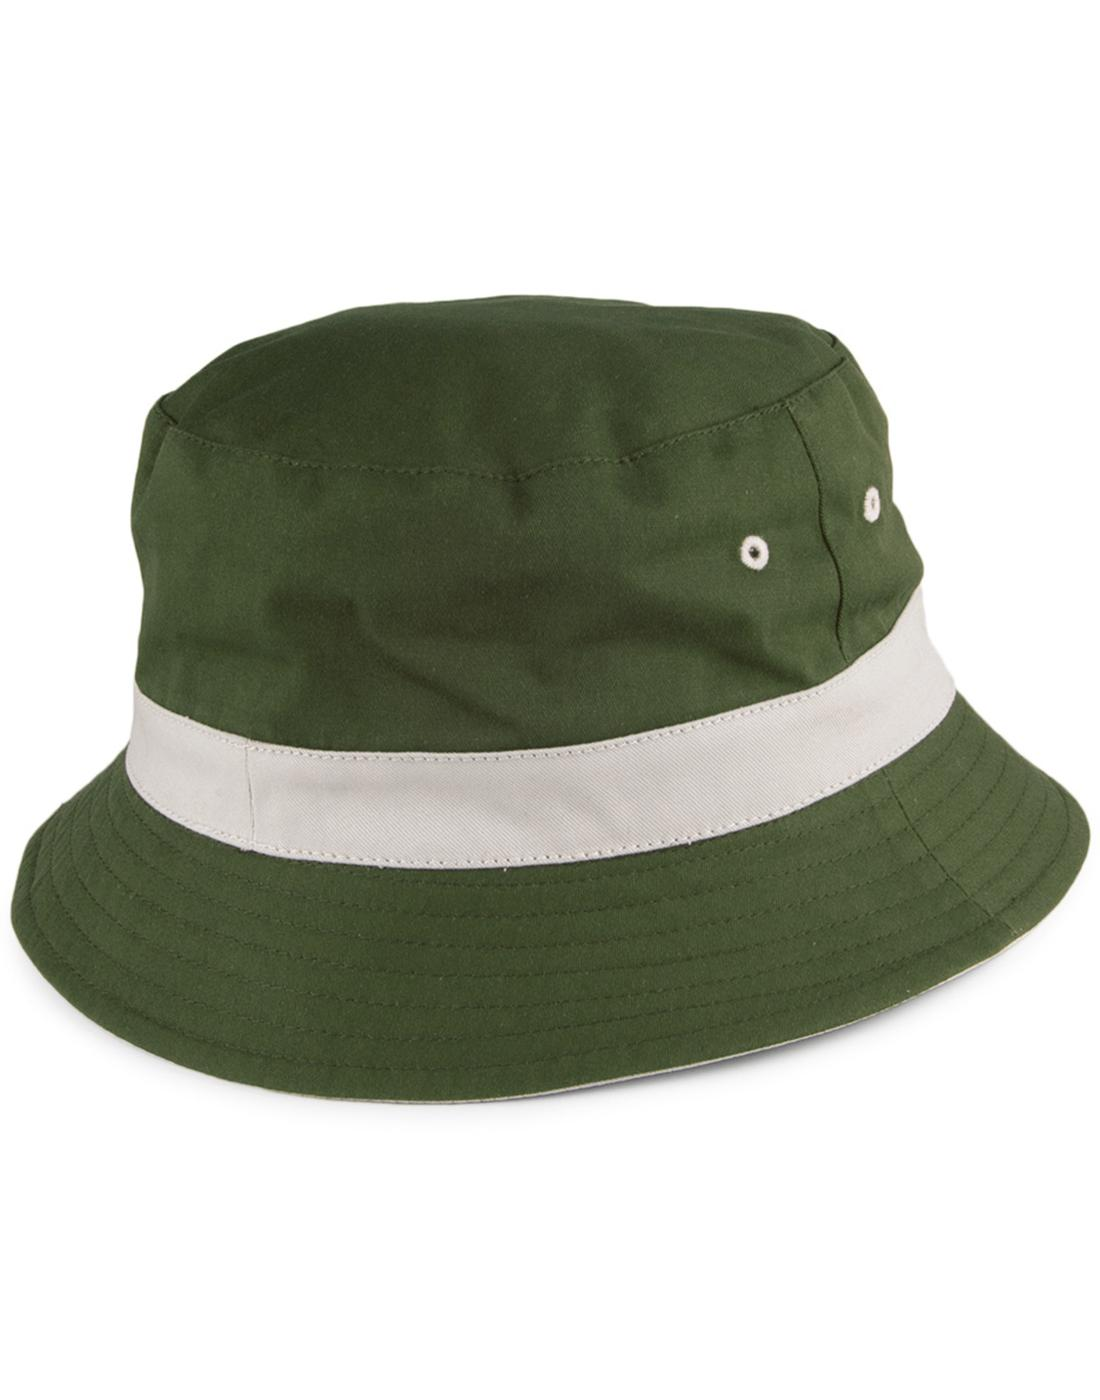 FAILSWORTH Retro Britpop Reversible Bucket Hat